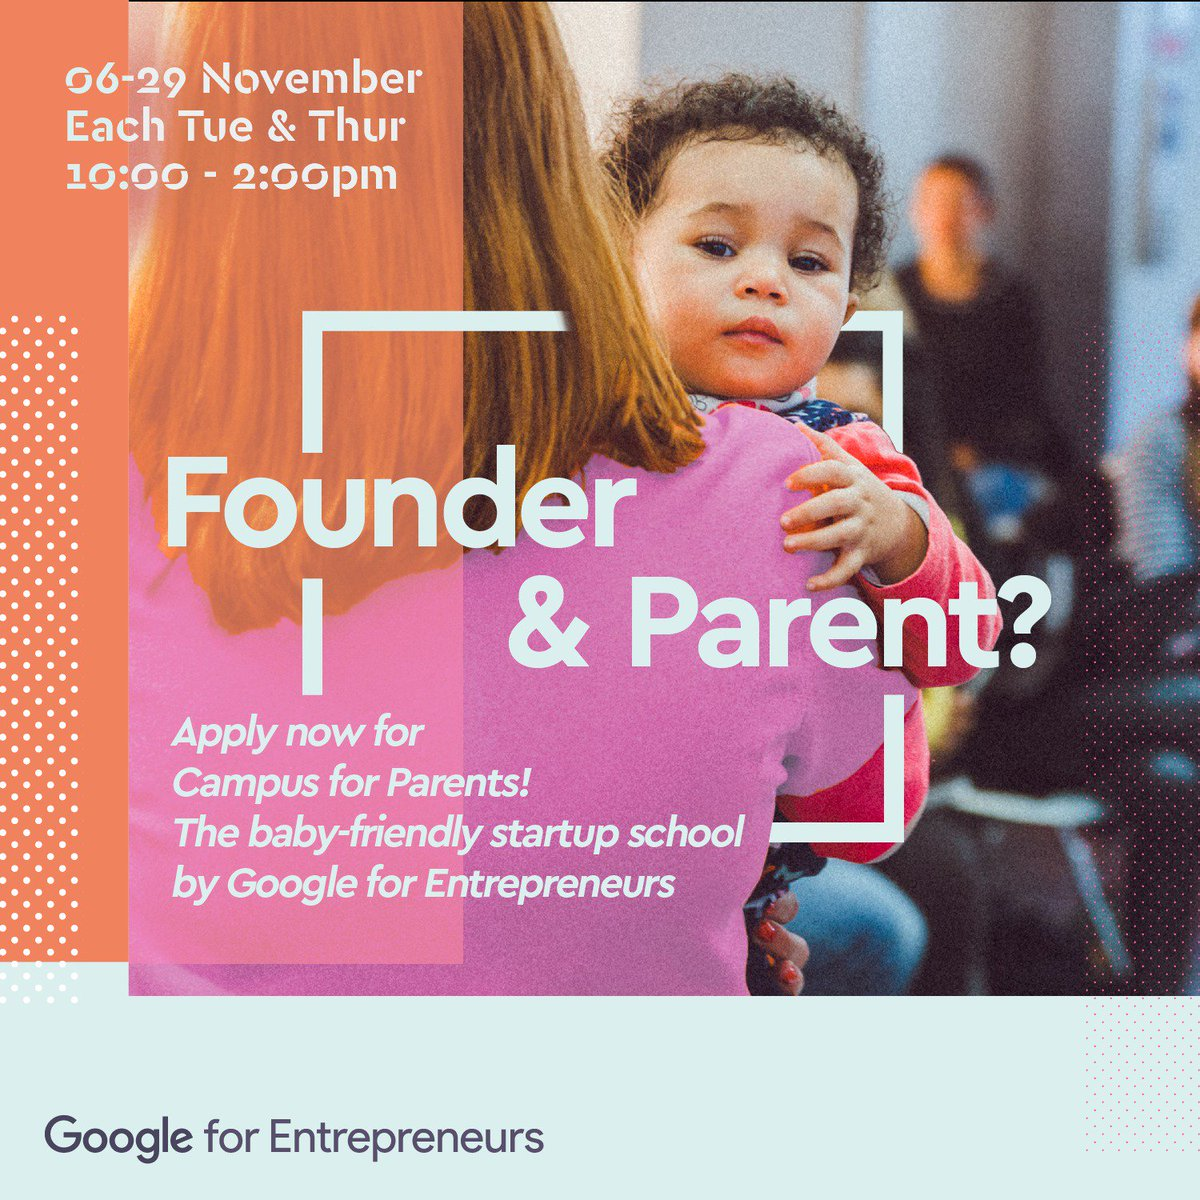 We have extended the application deadline for Campus for Parents - the worlds first baby-friendly startup school by Google for Entrepreneurs. Apply now until Oct 22 or share with other Parentpreneurs #campusforparents goo.gl/tYCCxL